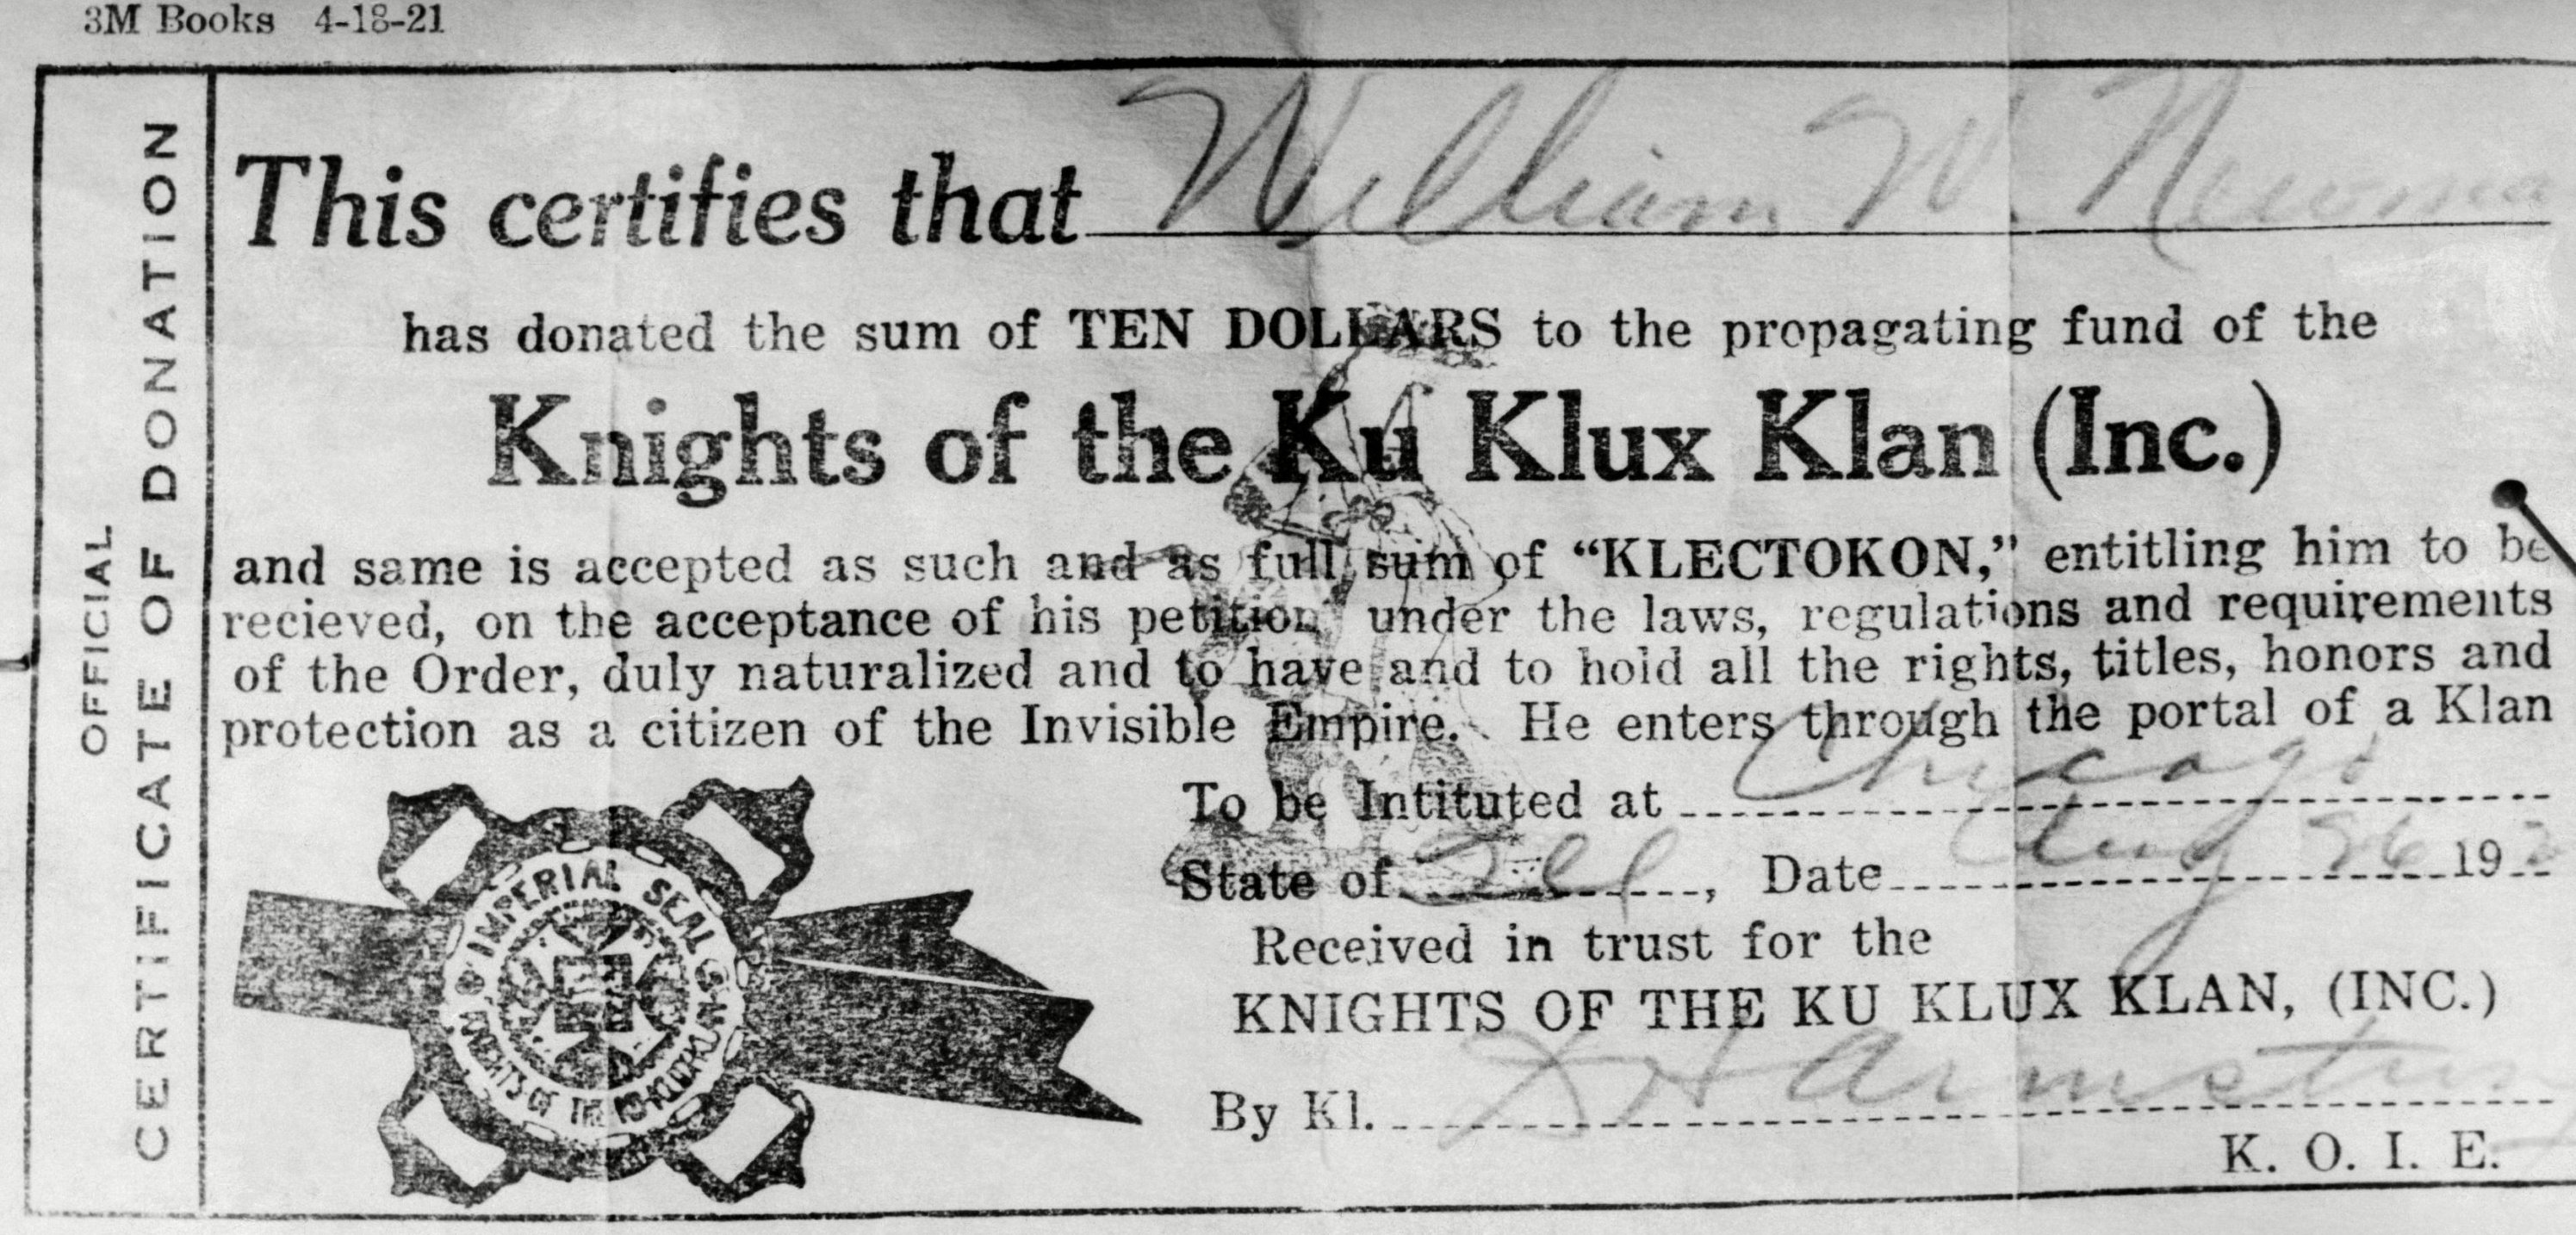 the ku klux klan (kkk) essay View and download ku klux klan essays examples also discover topics, titles, outlines, thesis statements, and conclusions for your ku klux klan essay.